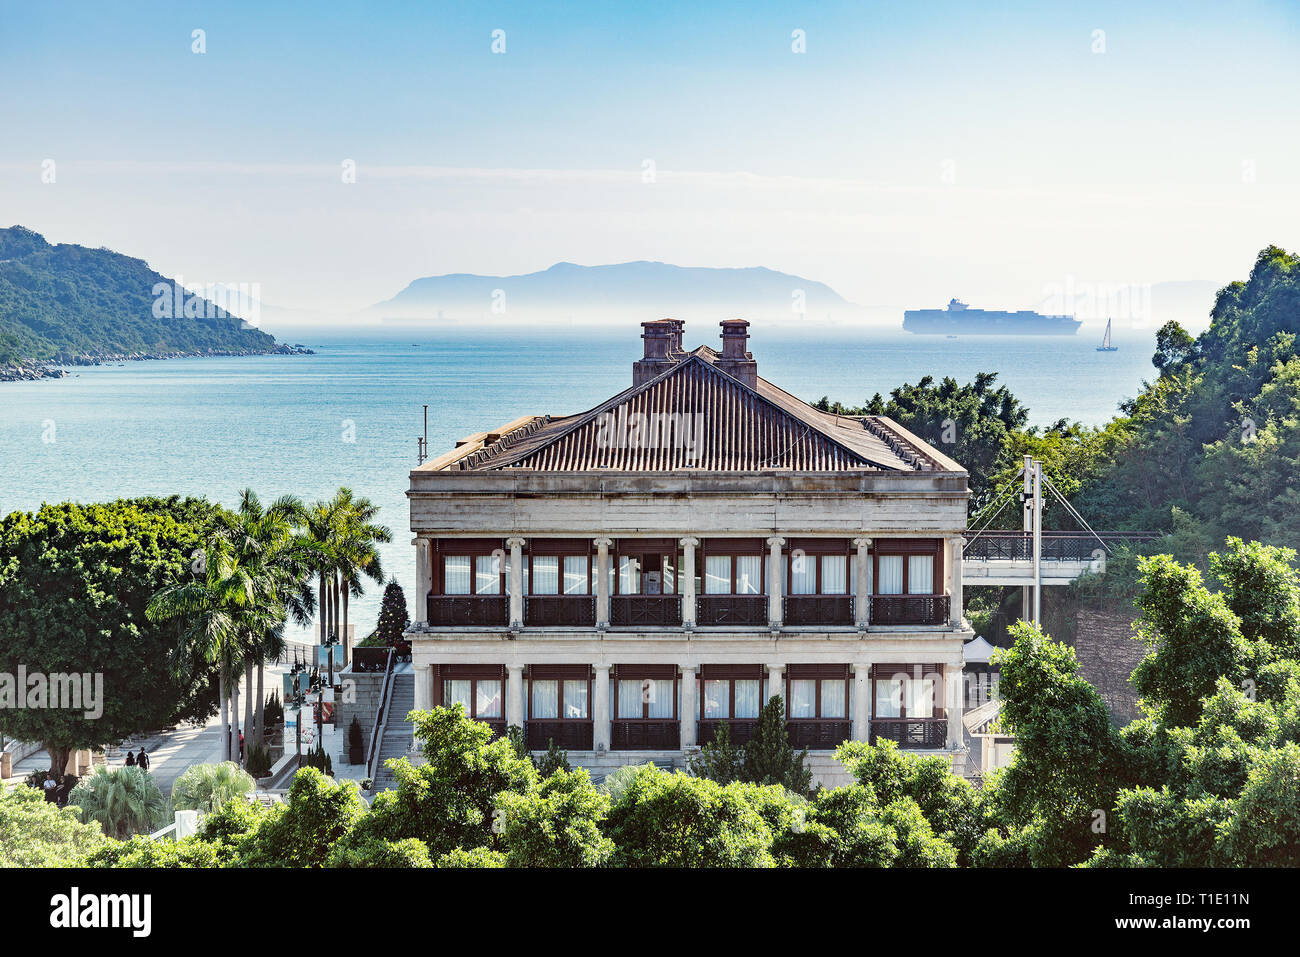 Murray house in Stanley town. Hong Kong. - Stock Image